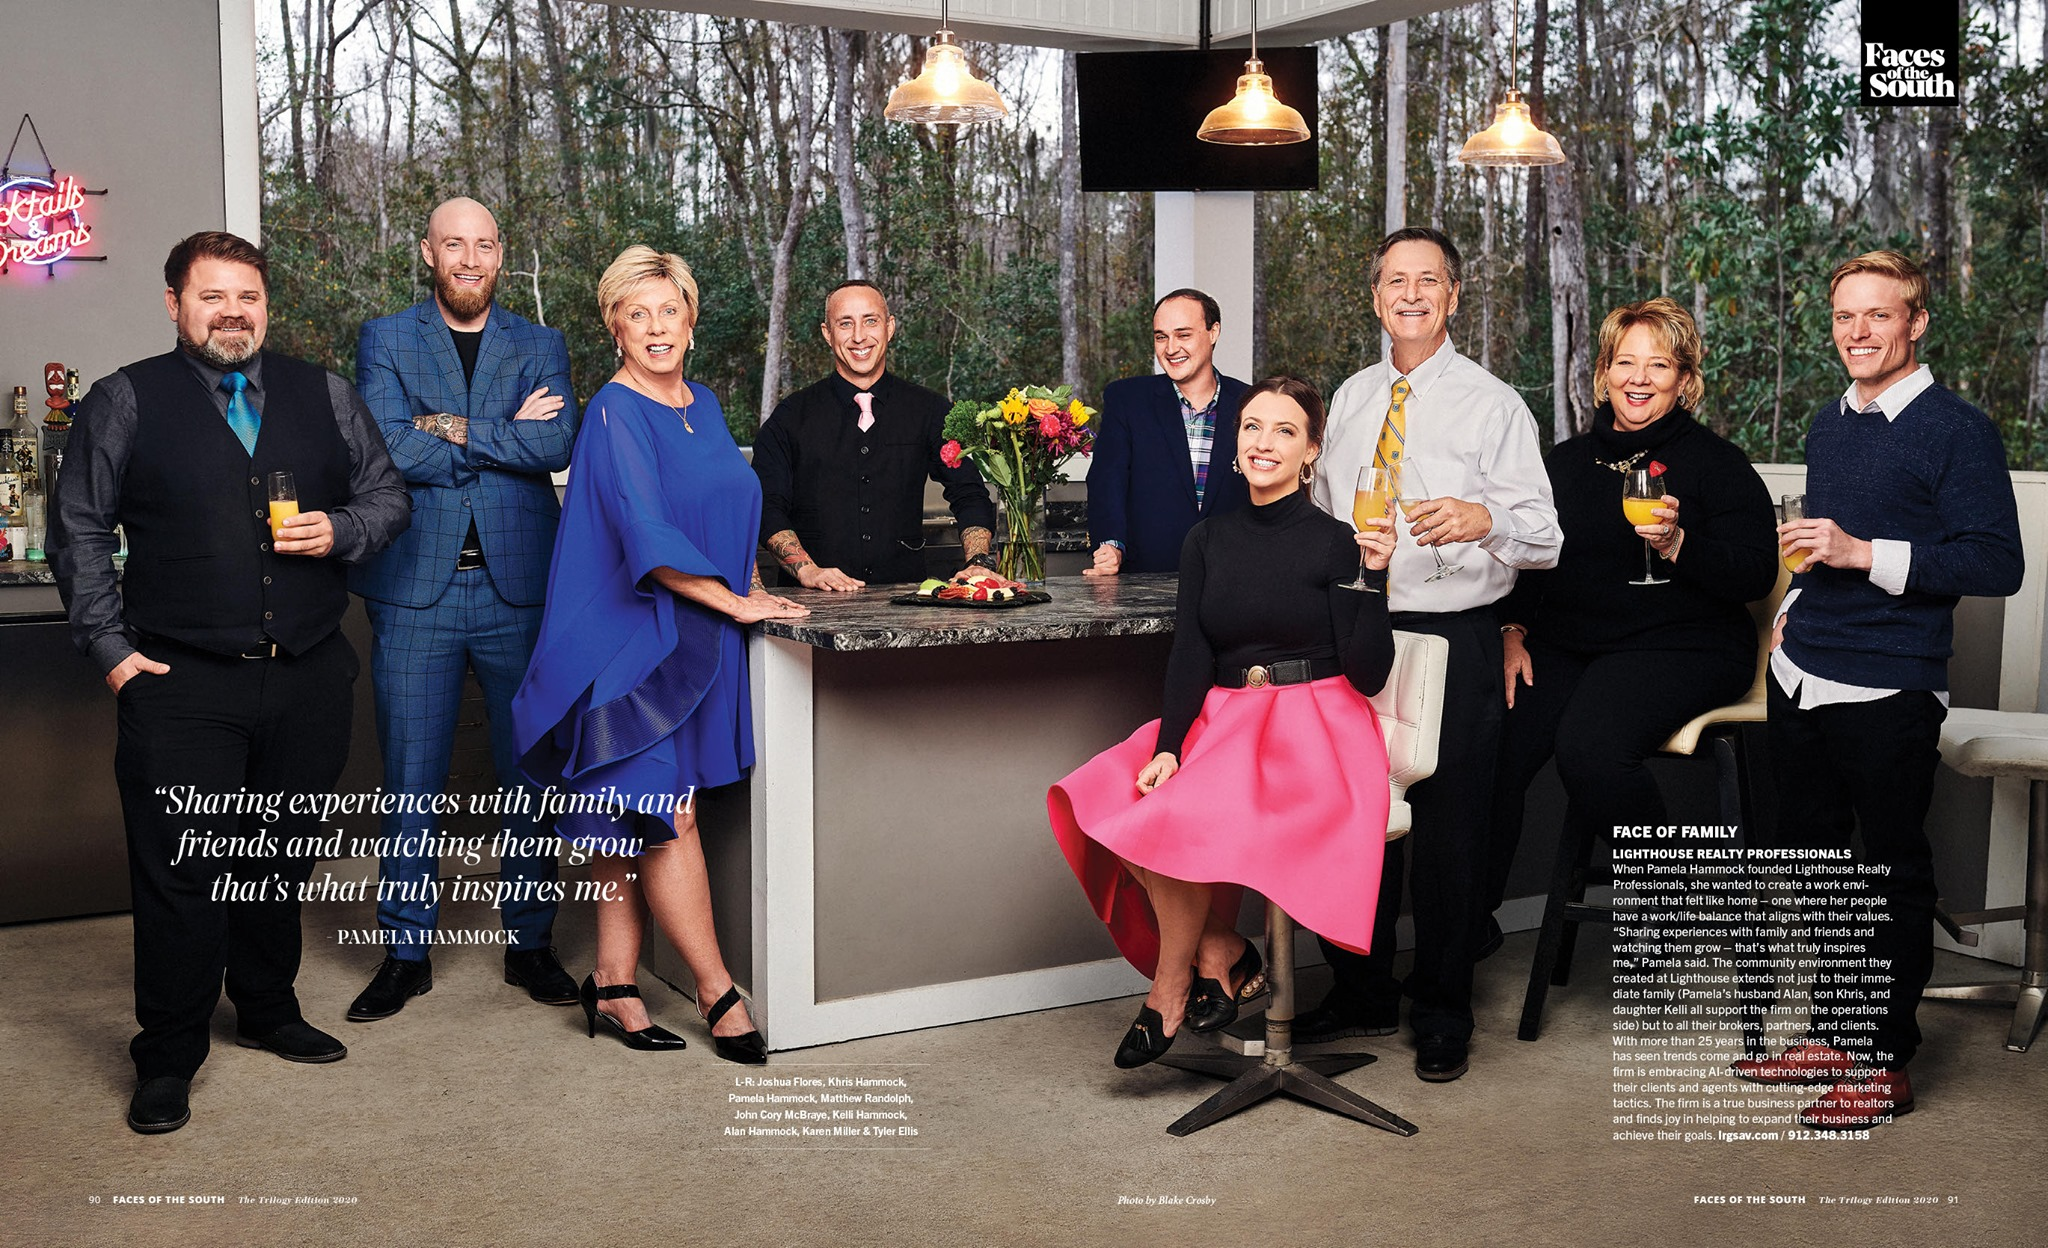 Lighthouse Realty Professionals, Faces of the South, South Magazine